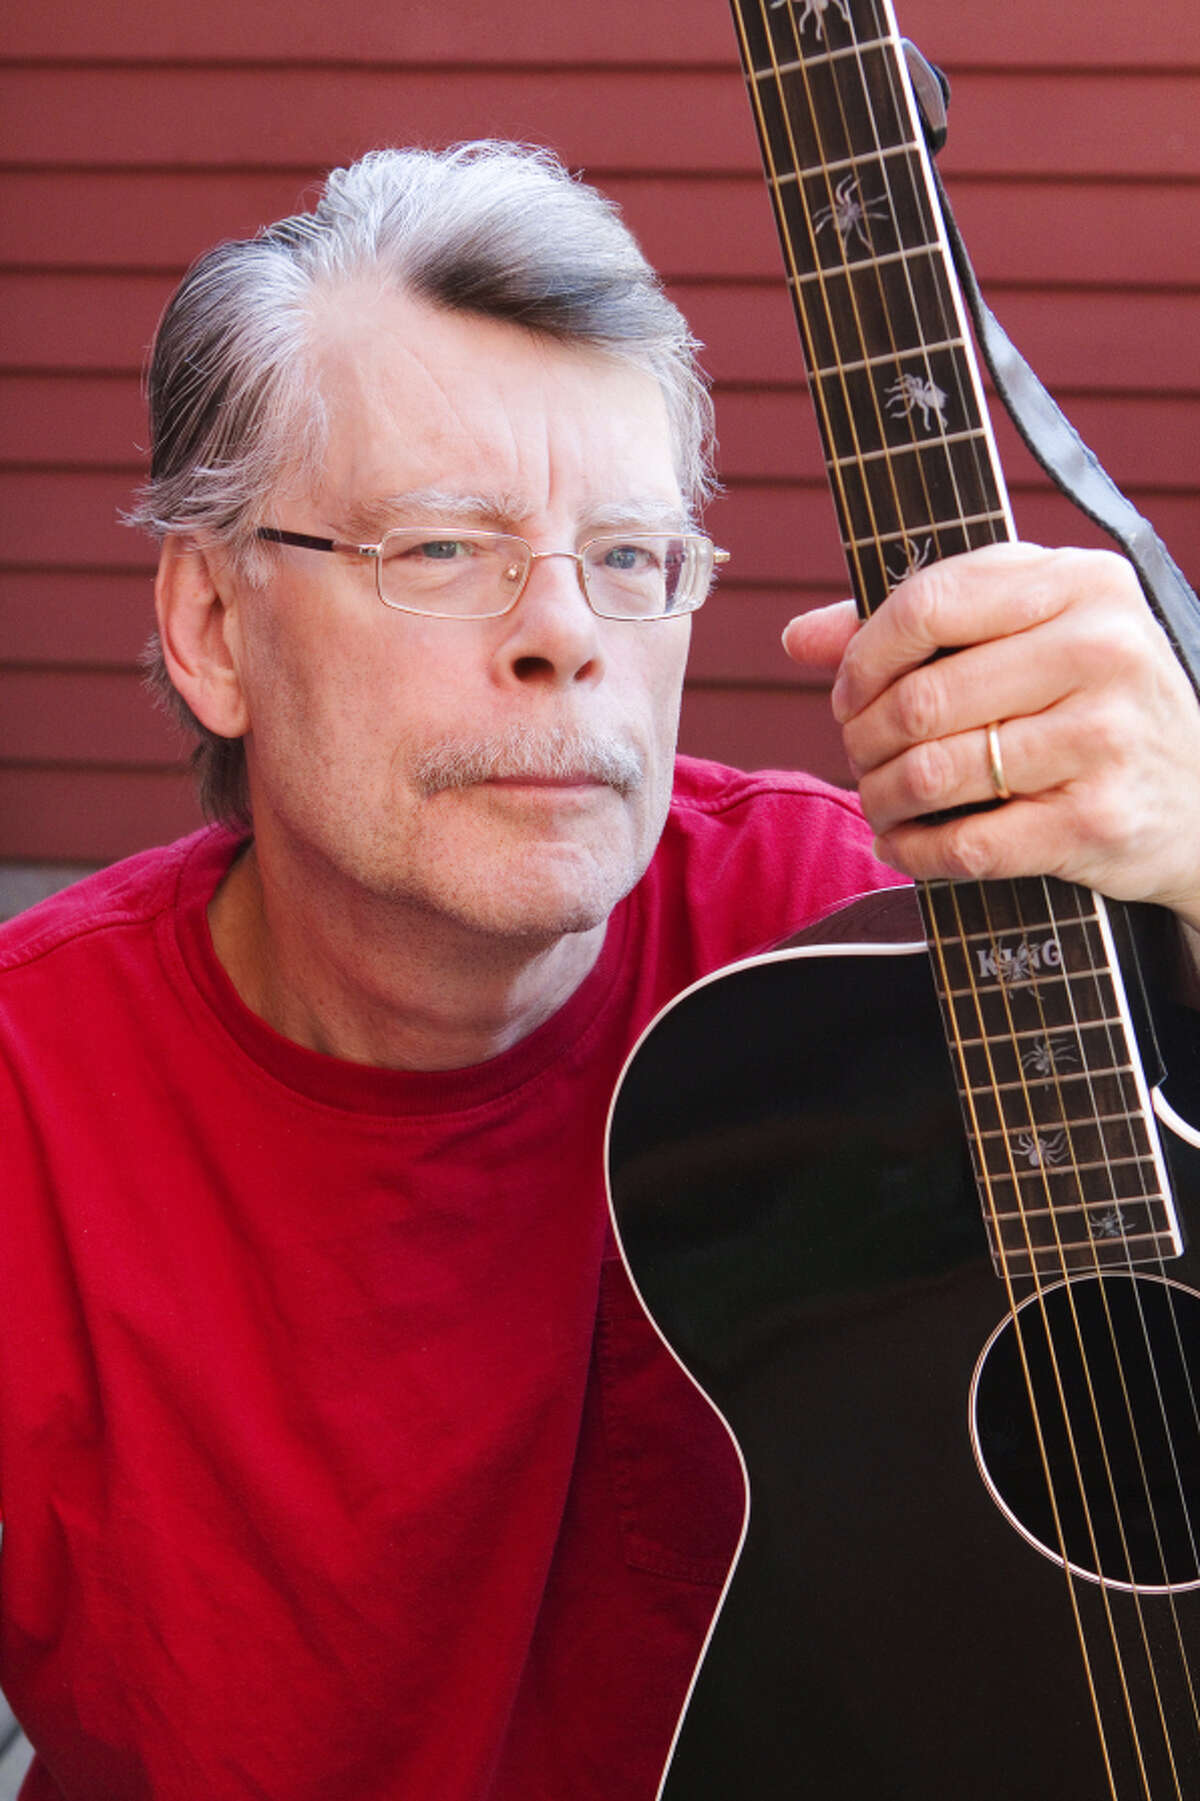 Bestselling author Stephen King wrote his first, and for decades, only play at age 11. But John Mellencamp convinced him to collaborate on a